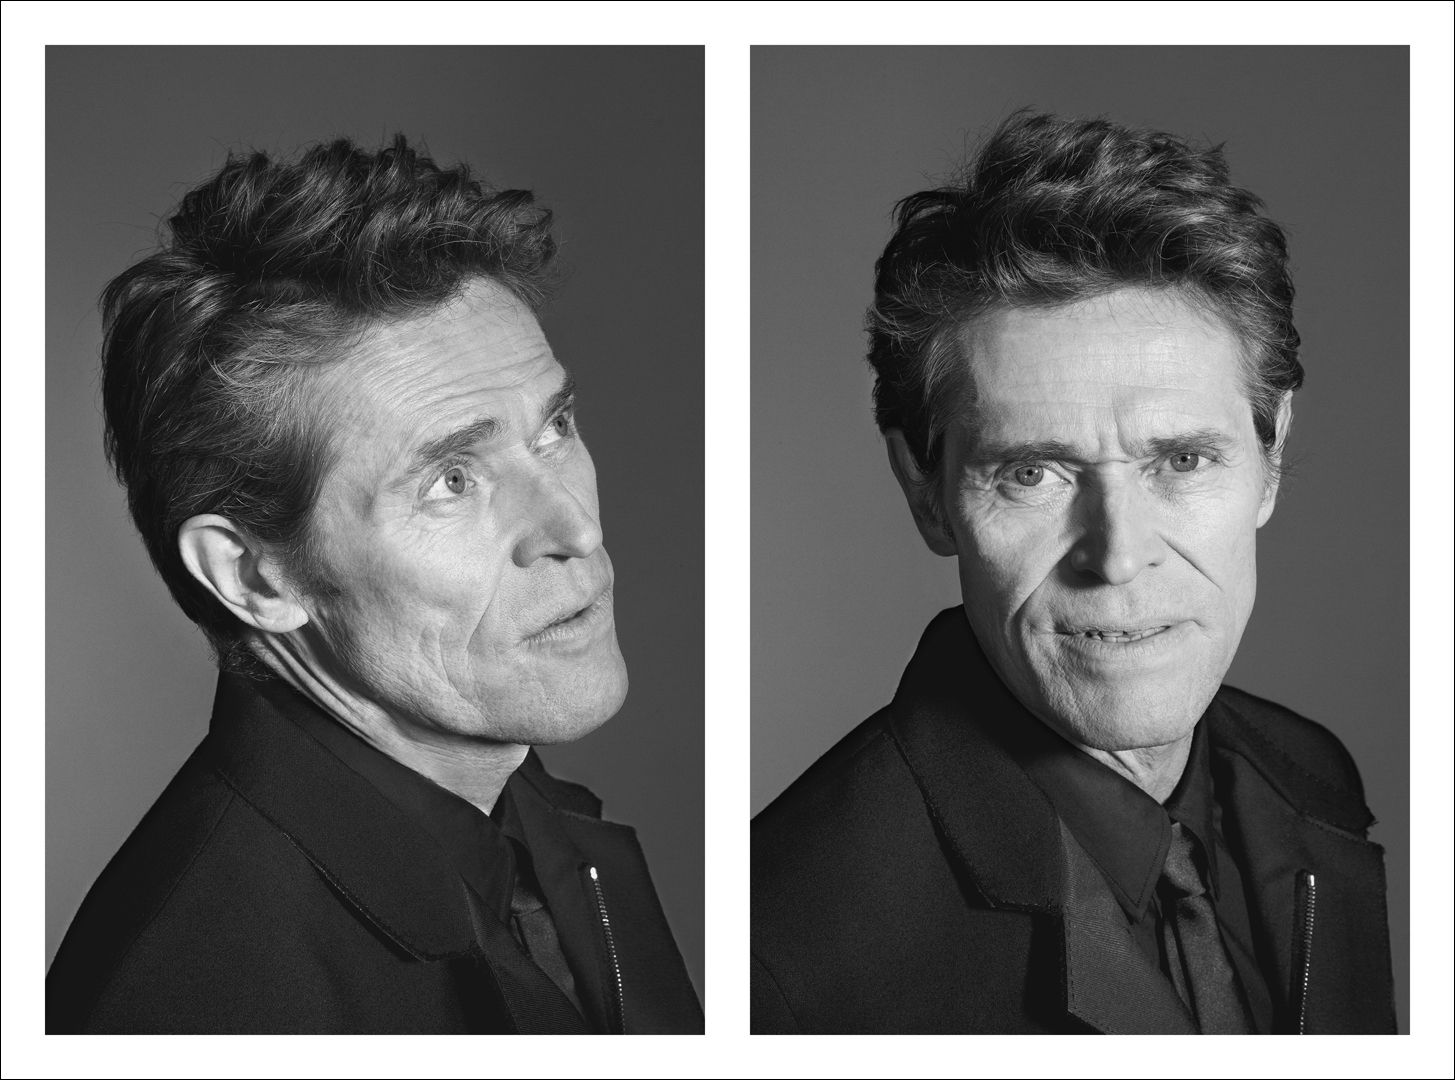 38_TIM_BARBER_WILLEM_DAFOE.jpg